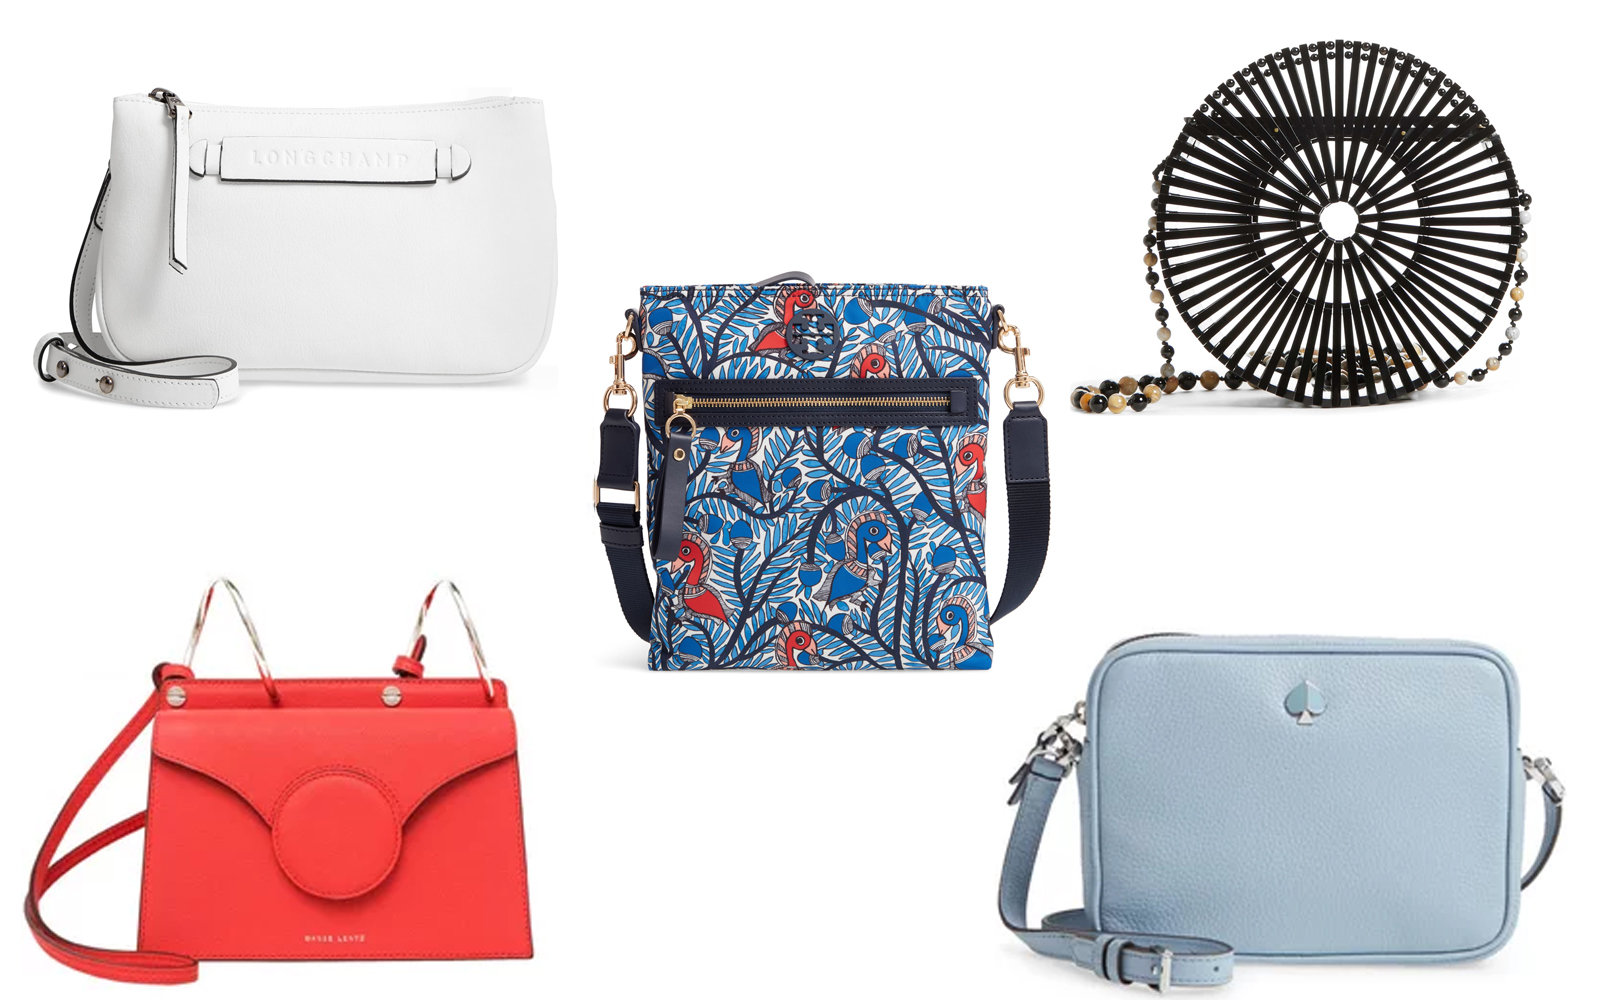 Nordstom's Half-yearly Sale Is Full of Cross-body Bags You'll Wear All Summer Long